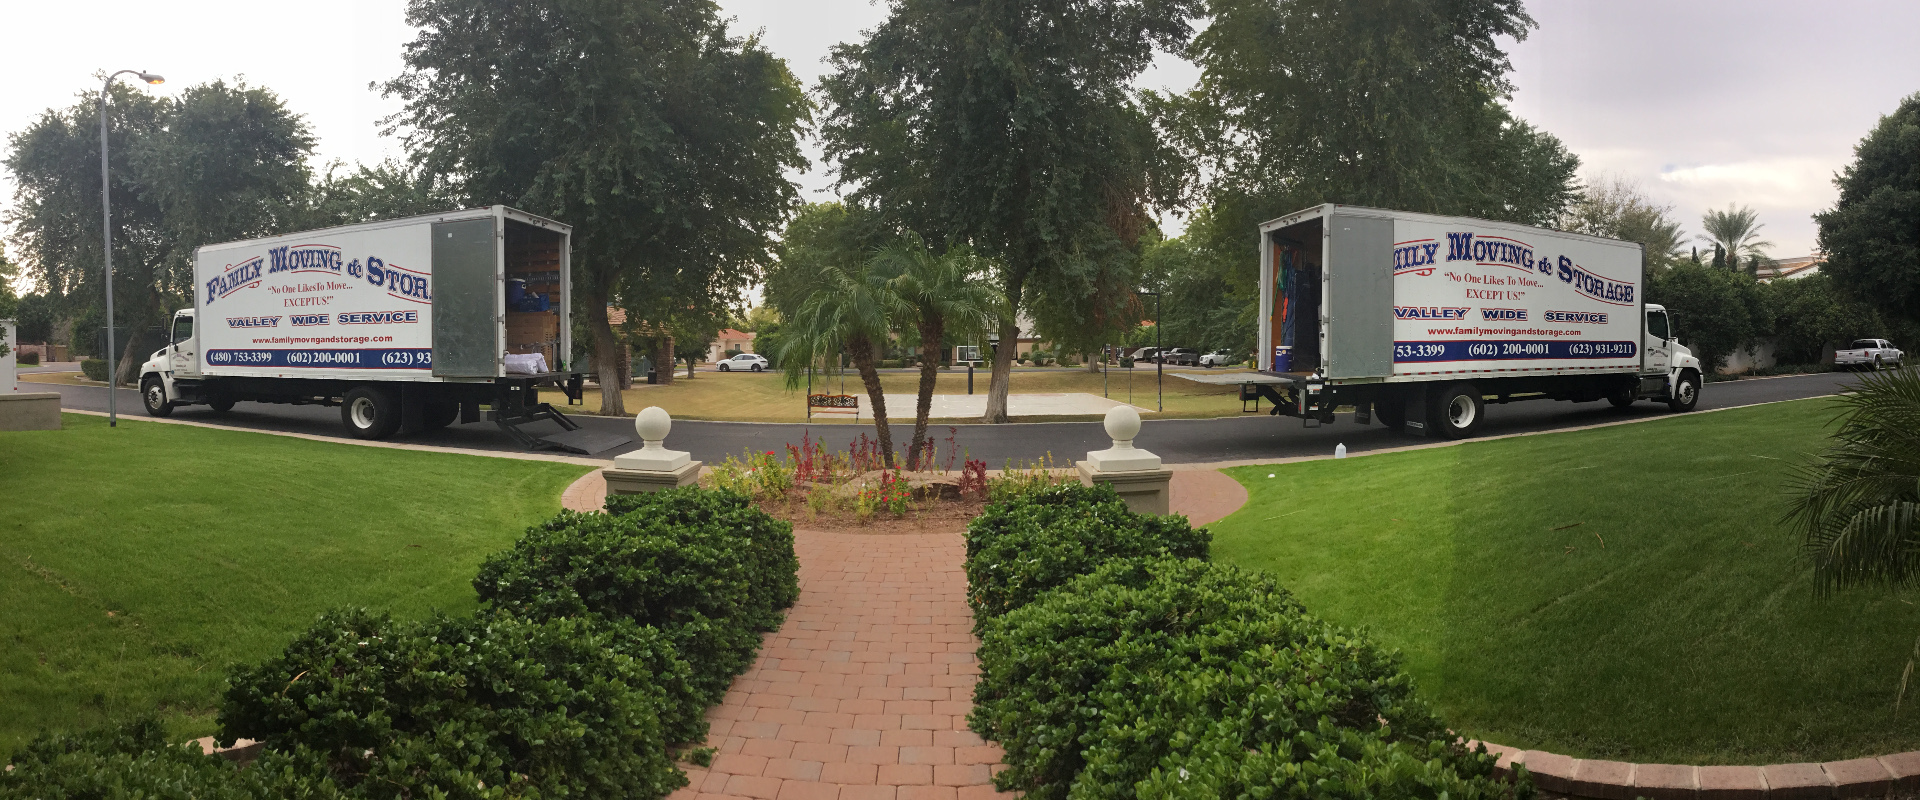 Commercial Moving Services in AZ - Family Moving & Storage